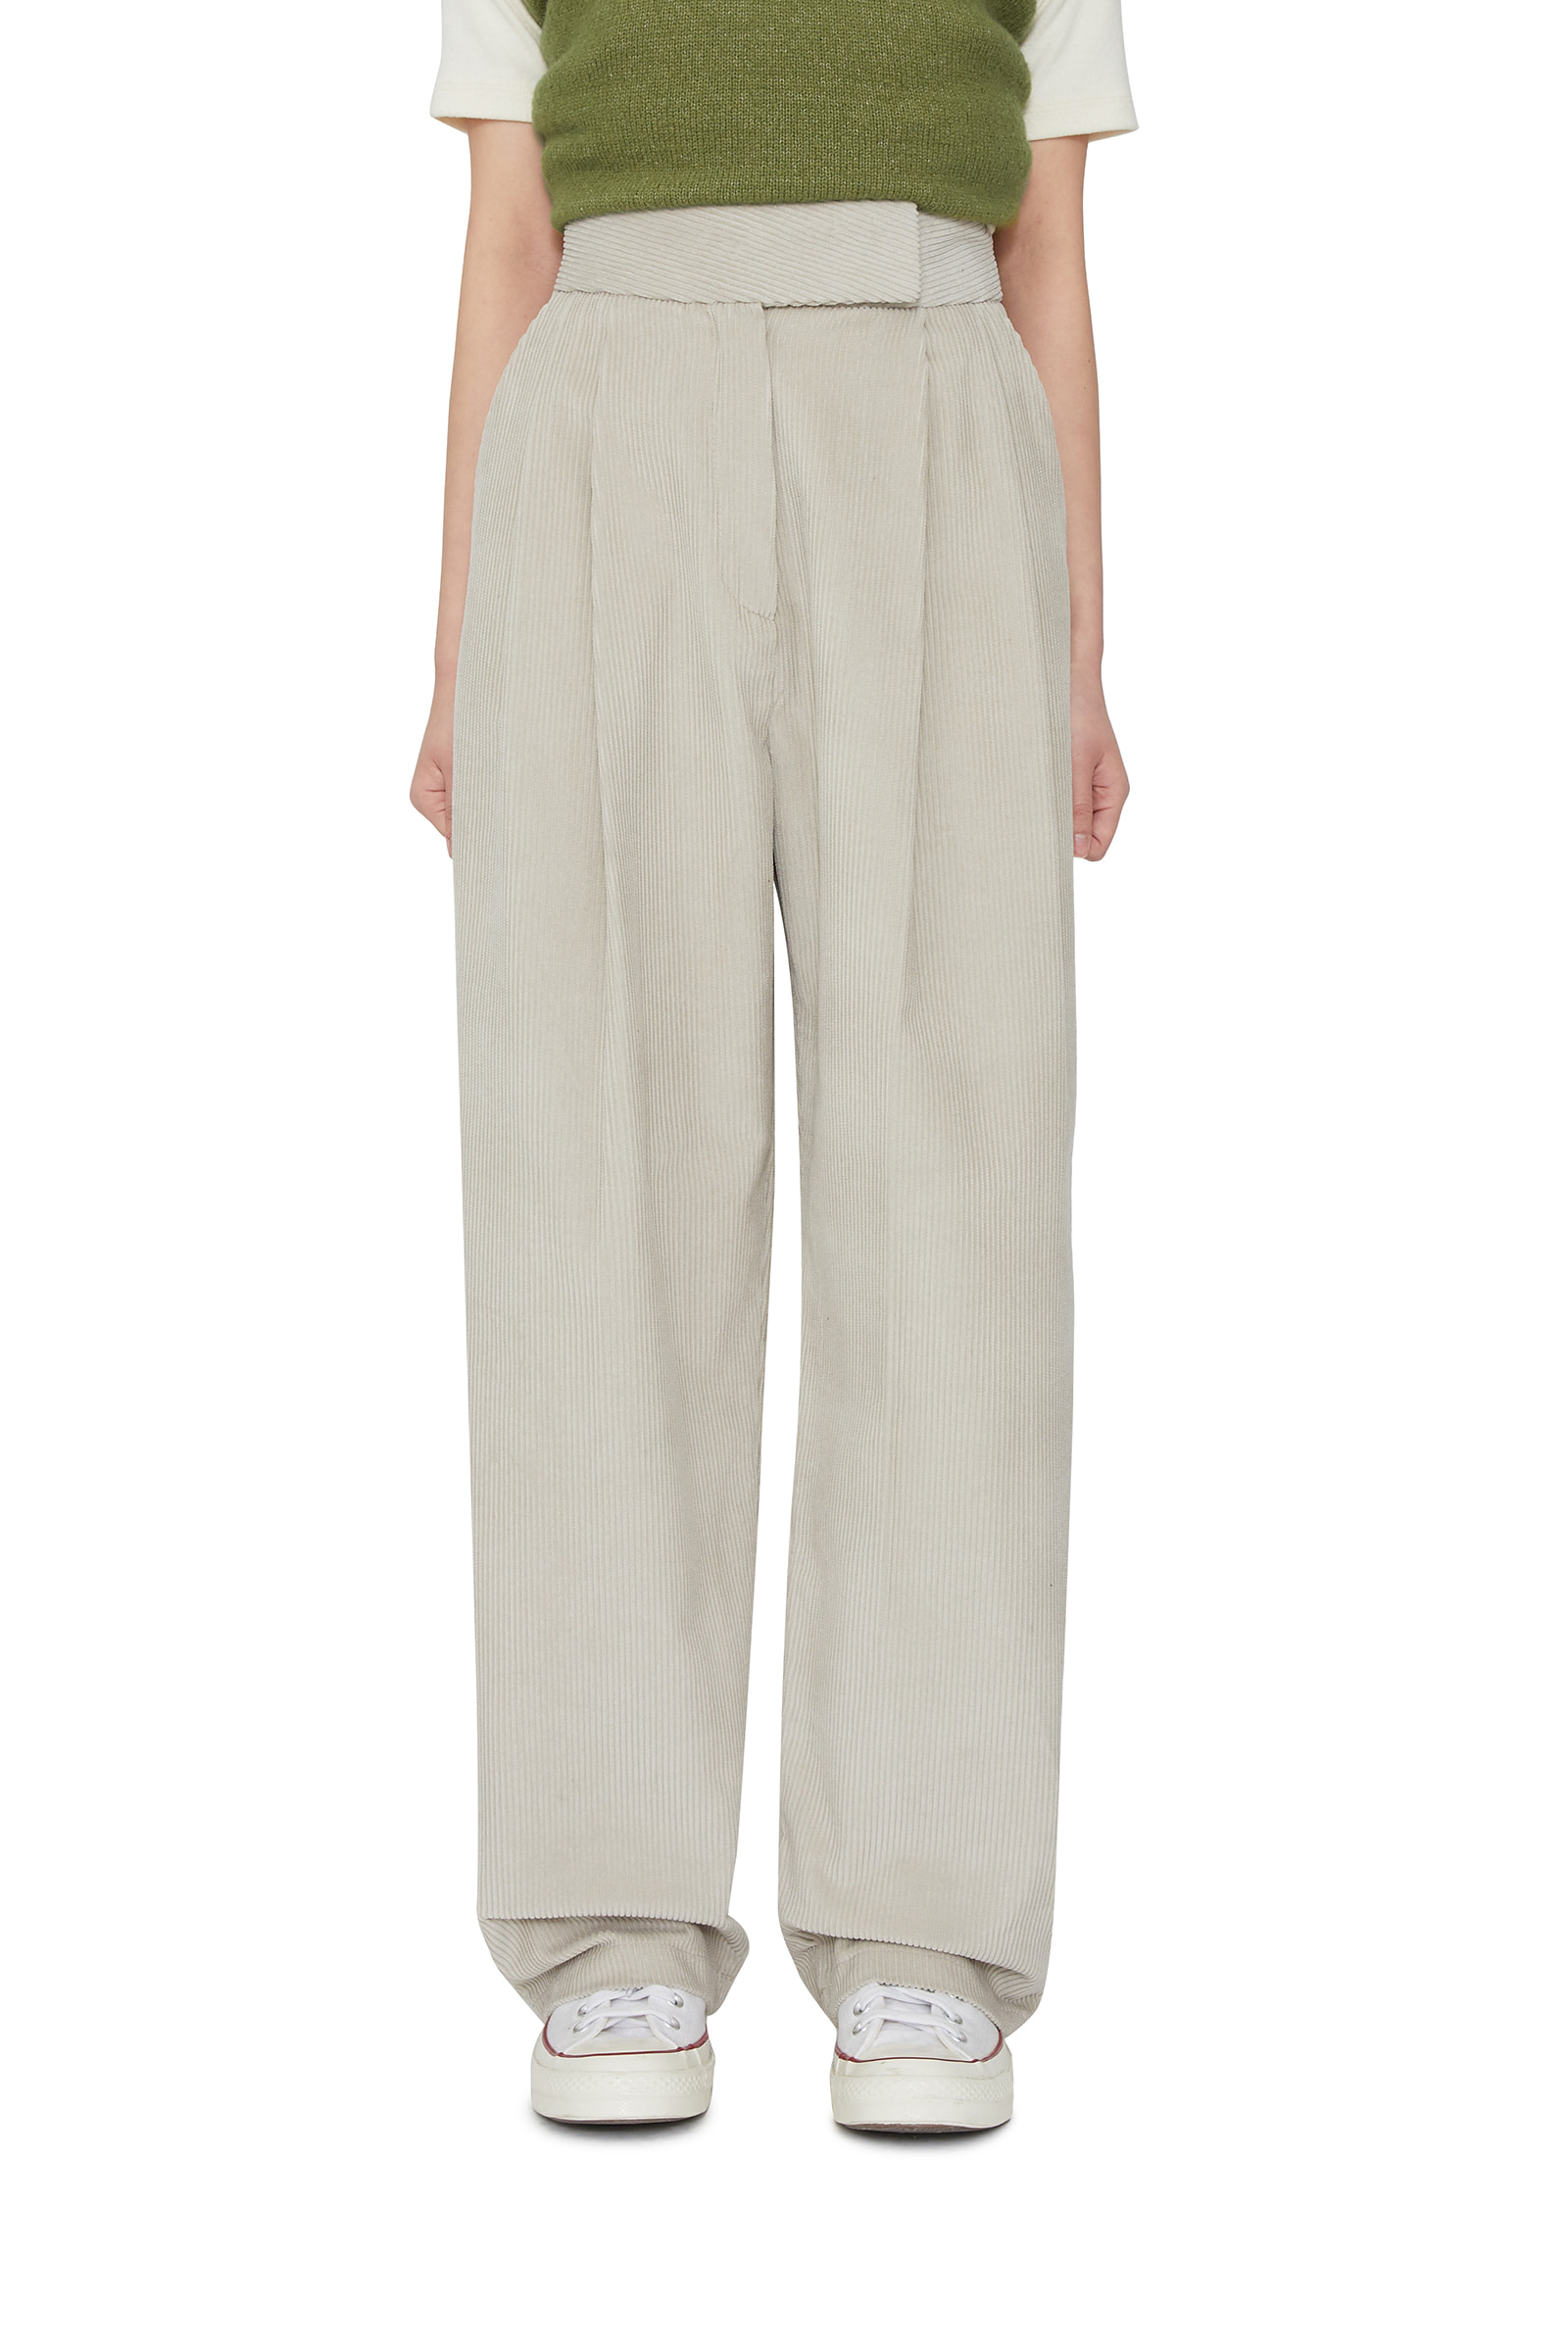 Mave corduroy wide trousers